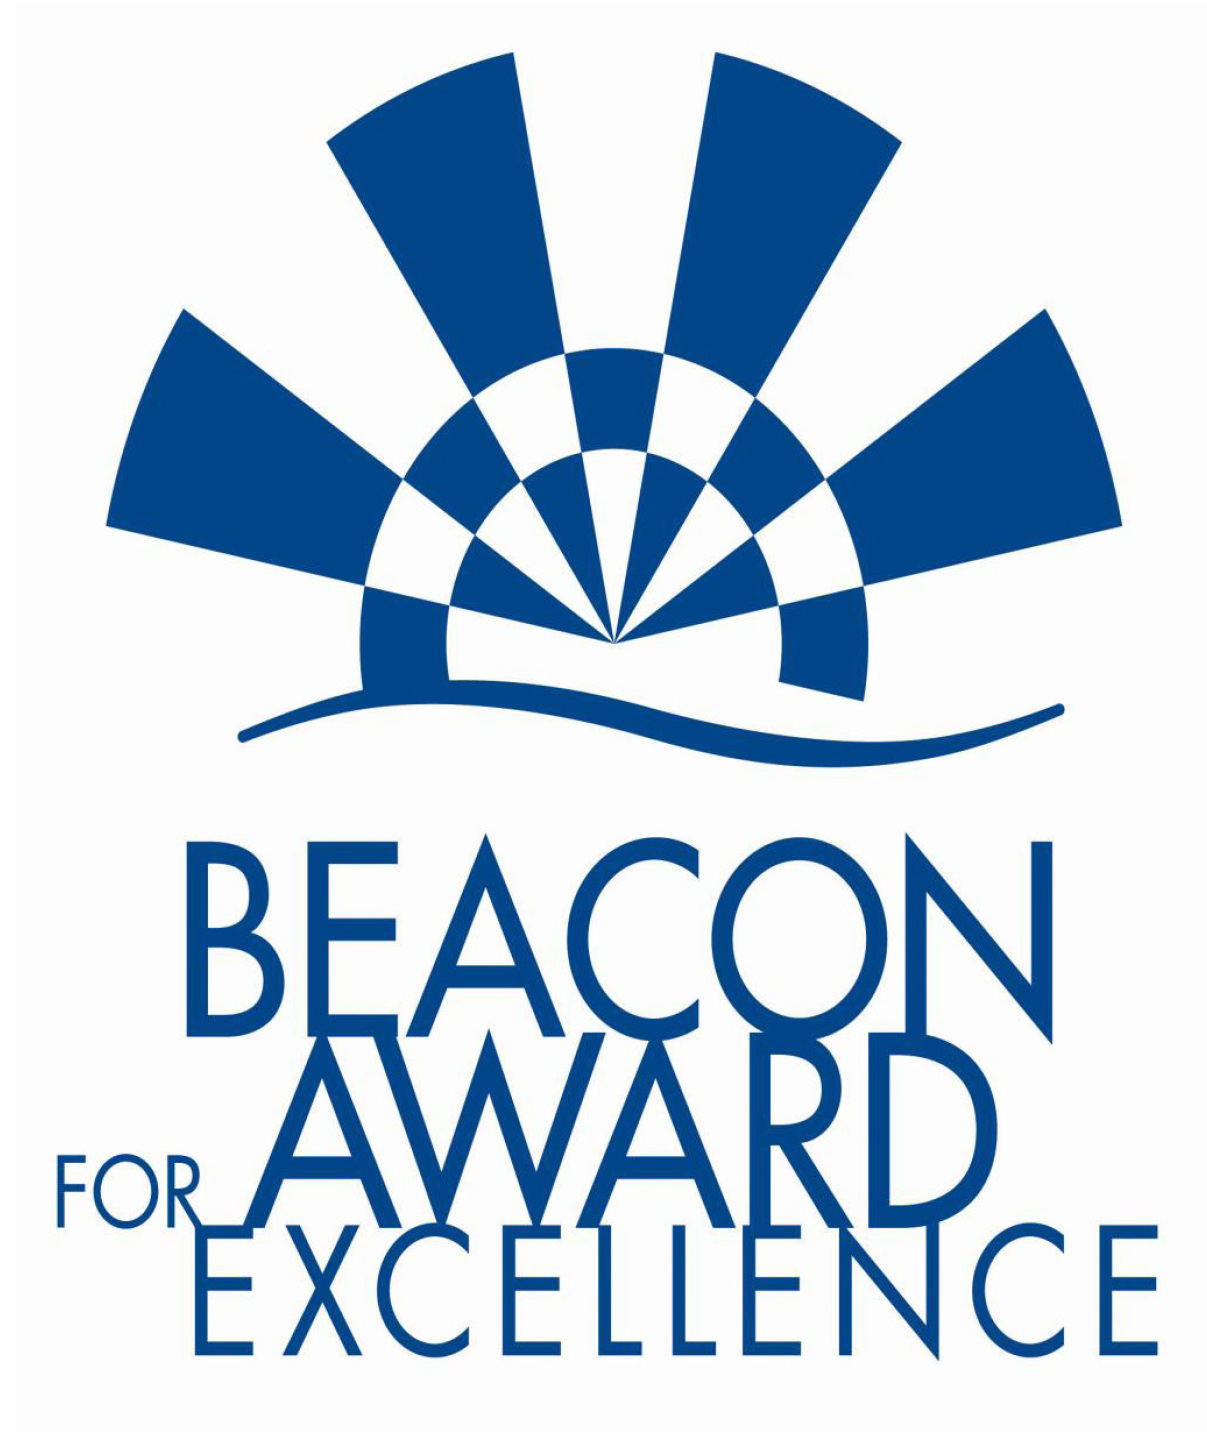 Beacon-Award-Logo.jpg